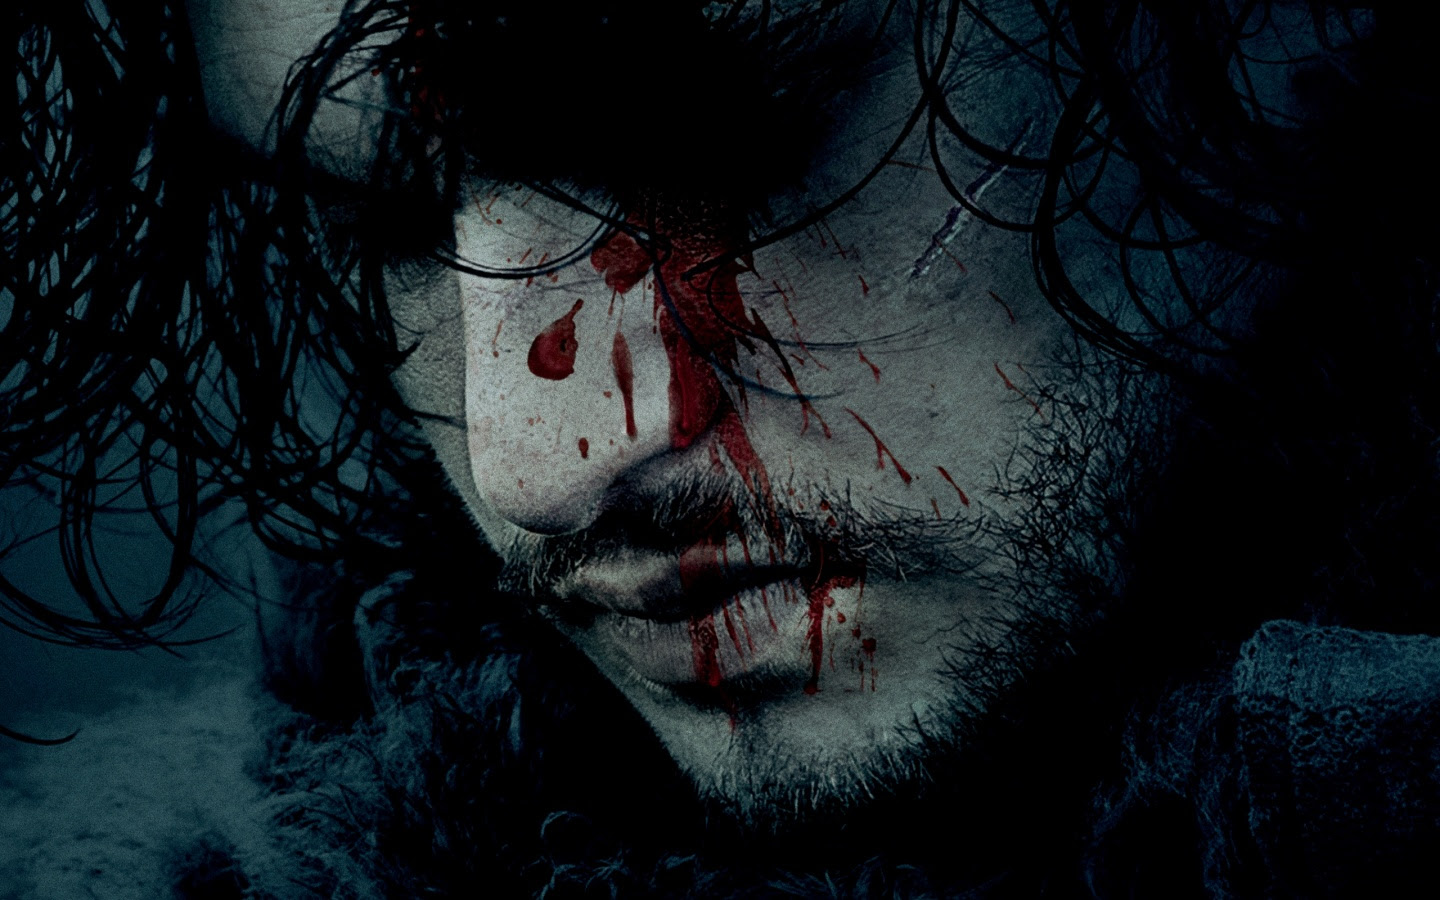 Game Of Thrones Season 6 Poster Wallpapers 1440x900 388609